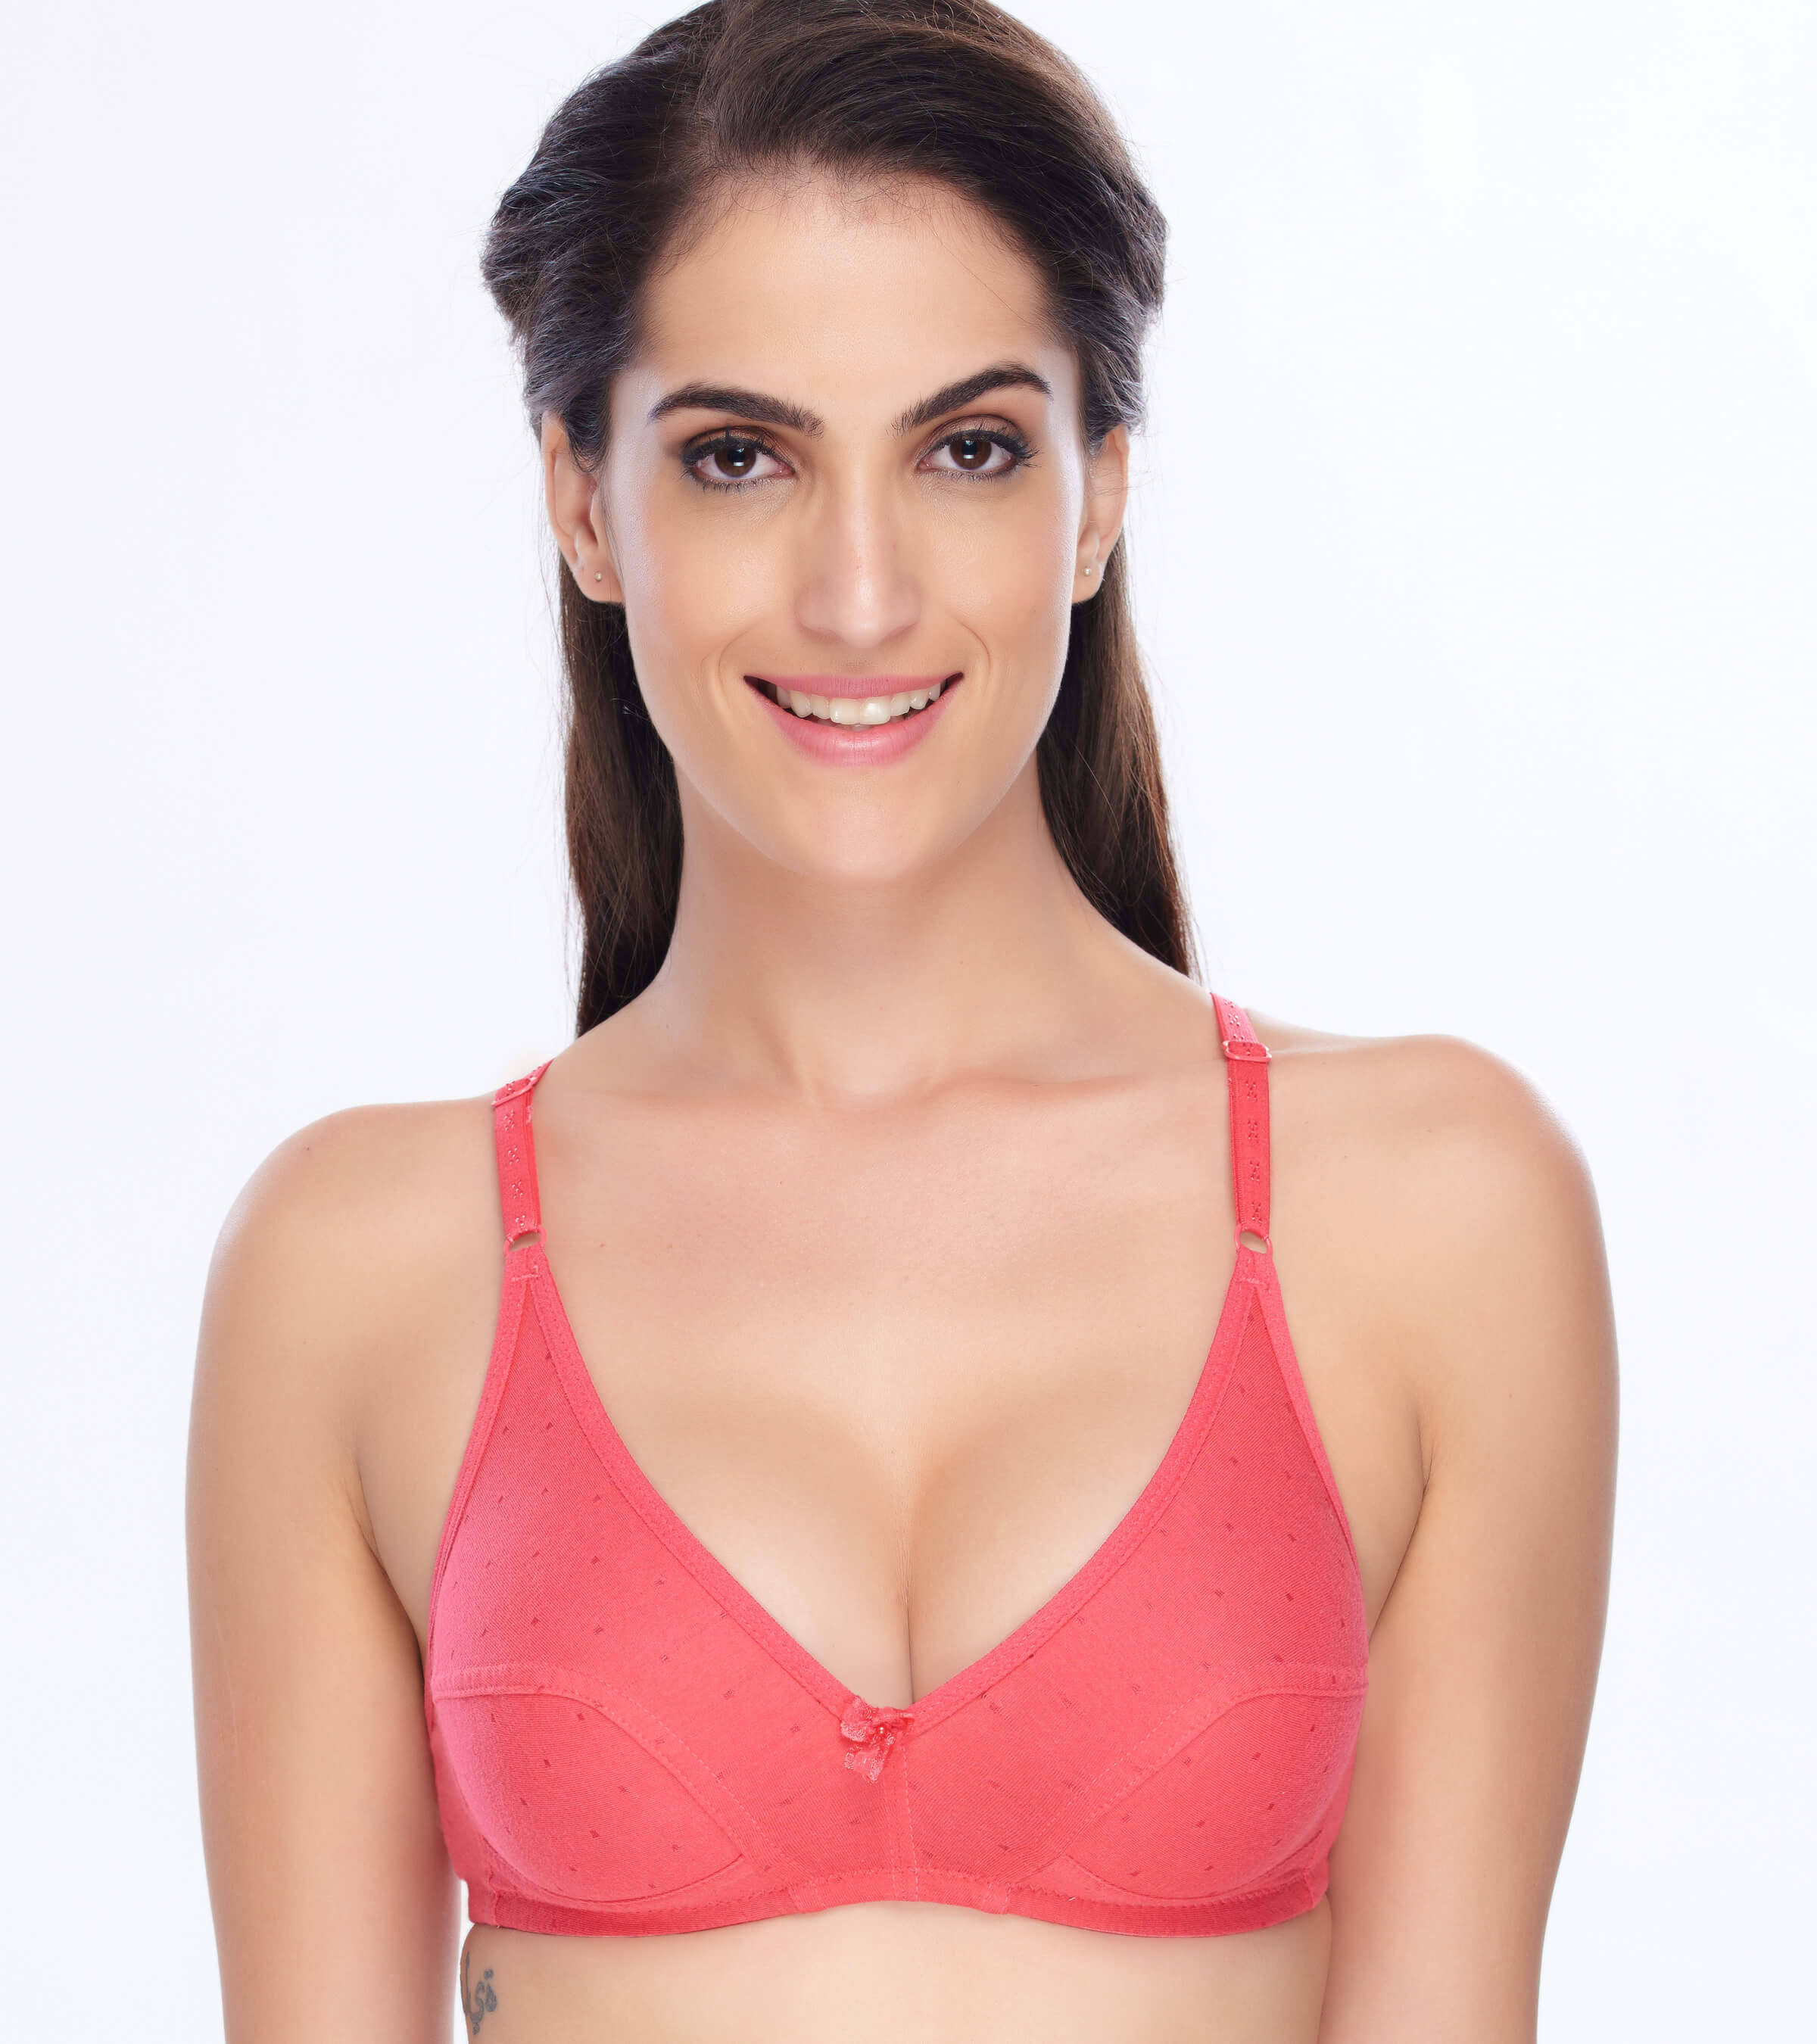 55fdd9b3a3659 Daisy Dee Cotton Lightly Padded Non Wired Full Coverage Red Bra ...